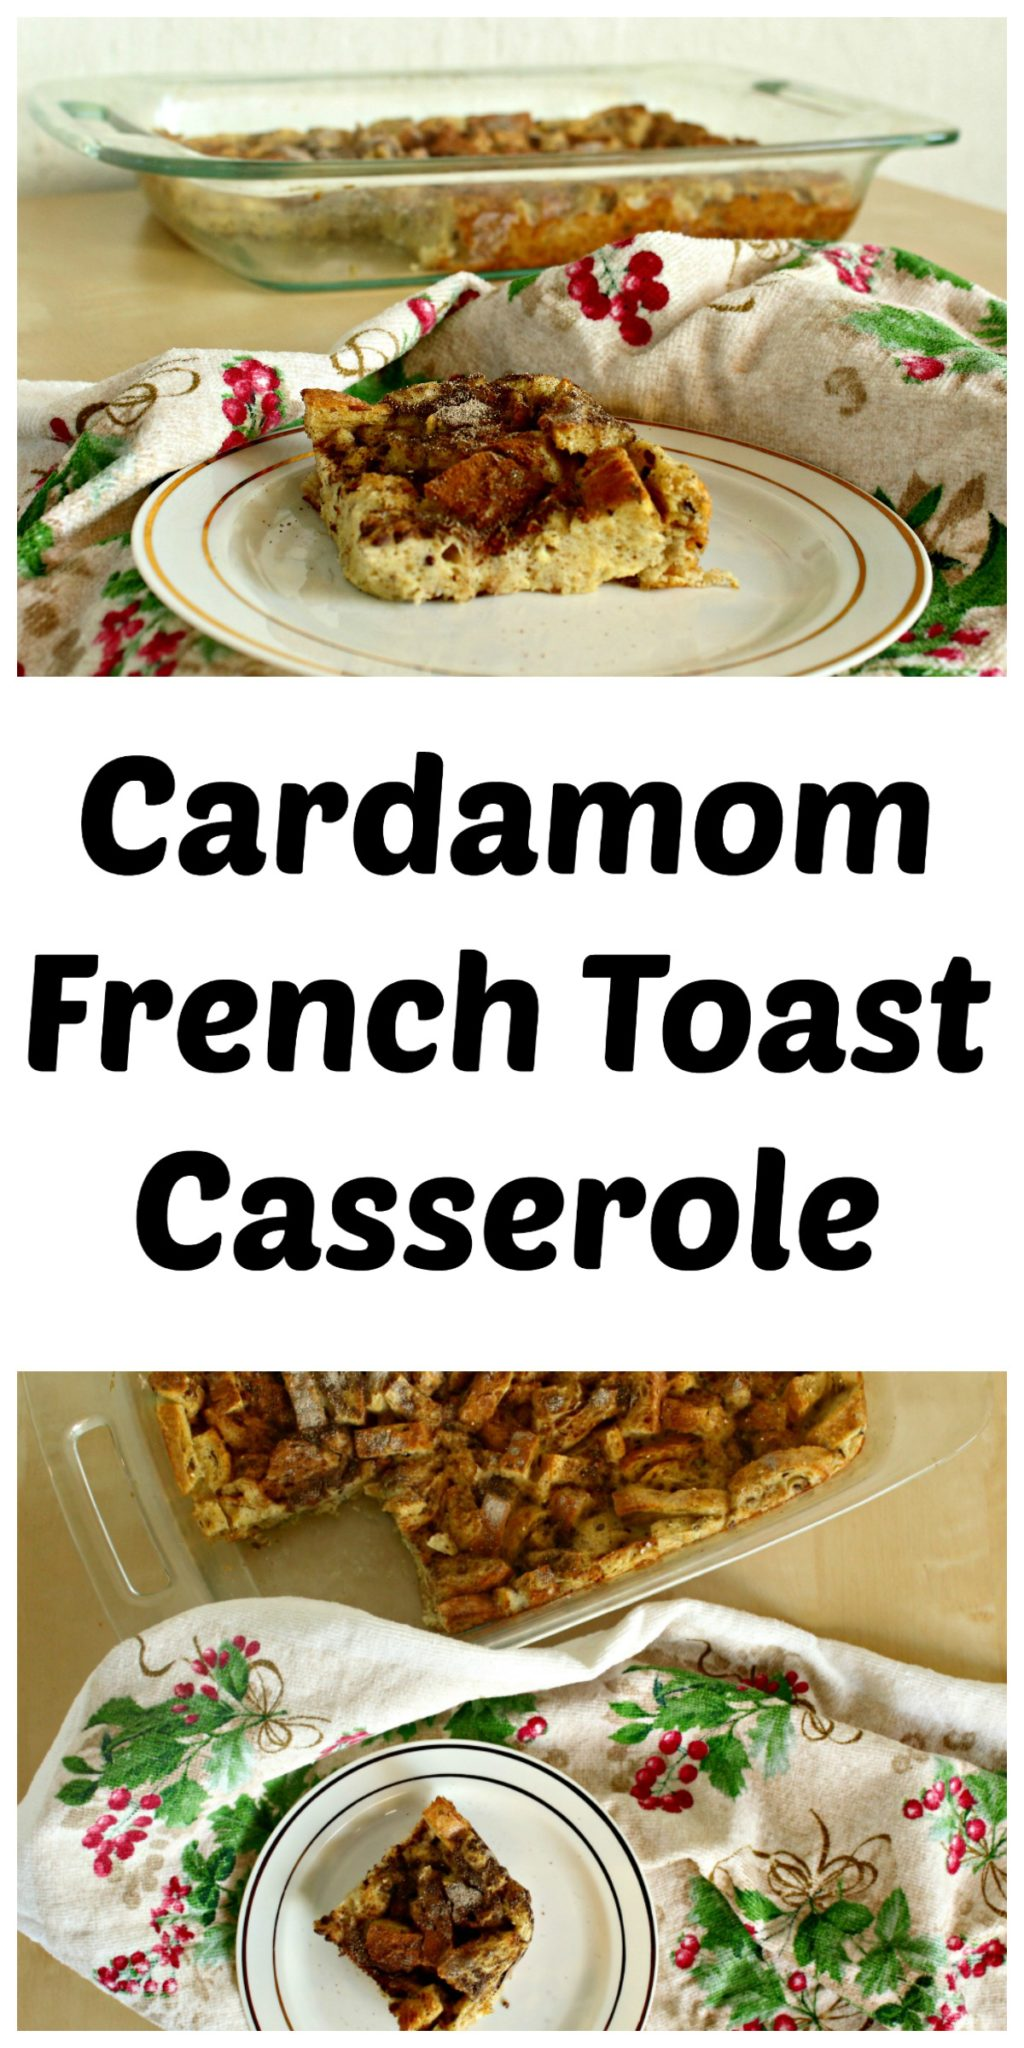 cardamom-french-toast-casserole-collage-pic